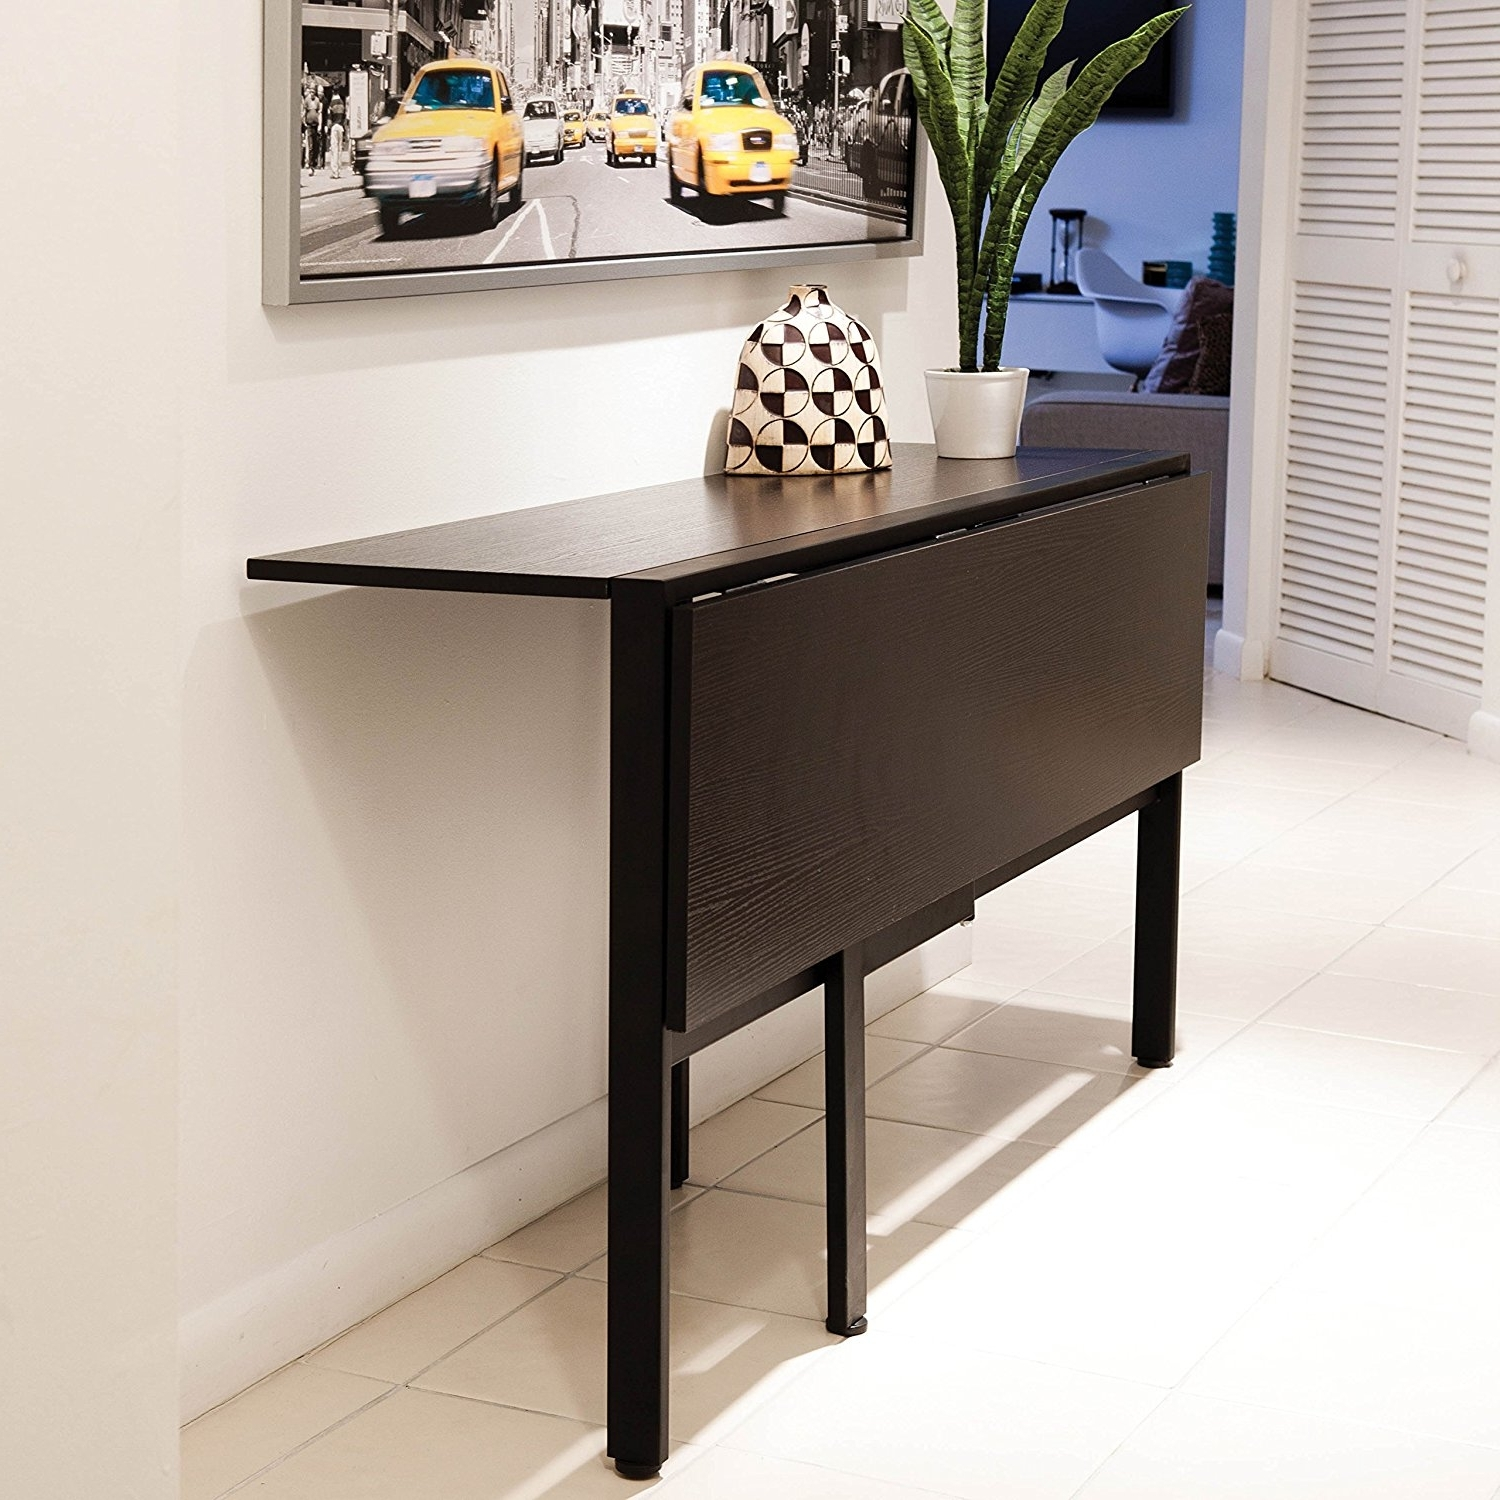 What Are The Benefits Of Folding Dining Tables? – Home Decor Ideas Intended For Most Popular Cheap Folding Dining Tables (View 2 of 25)